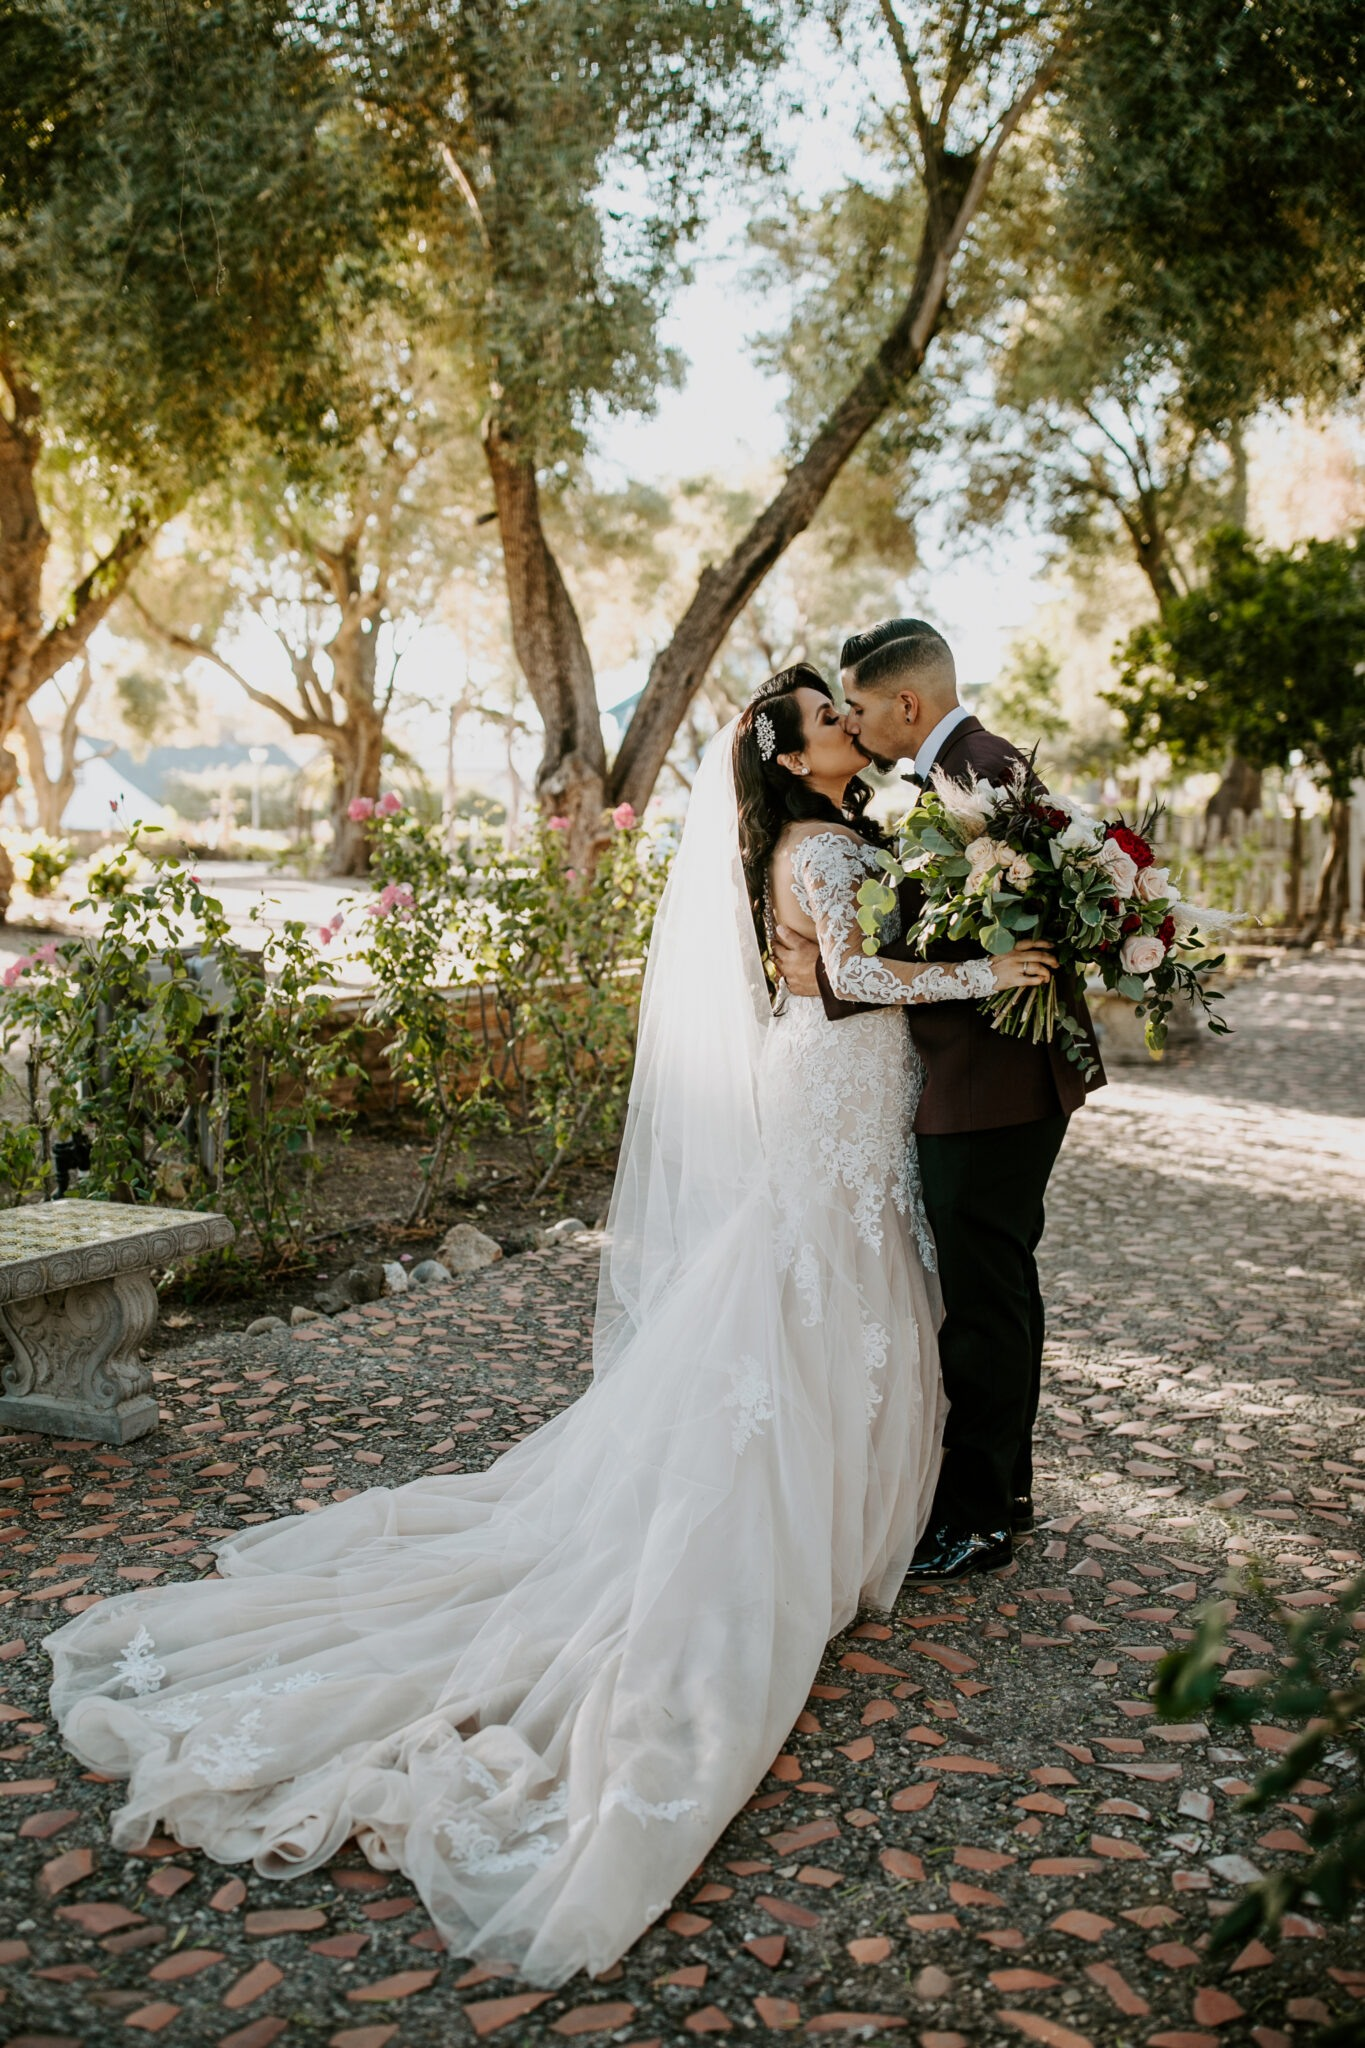 Mission San Juan Bautista Wedding